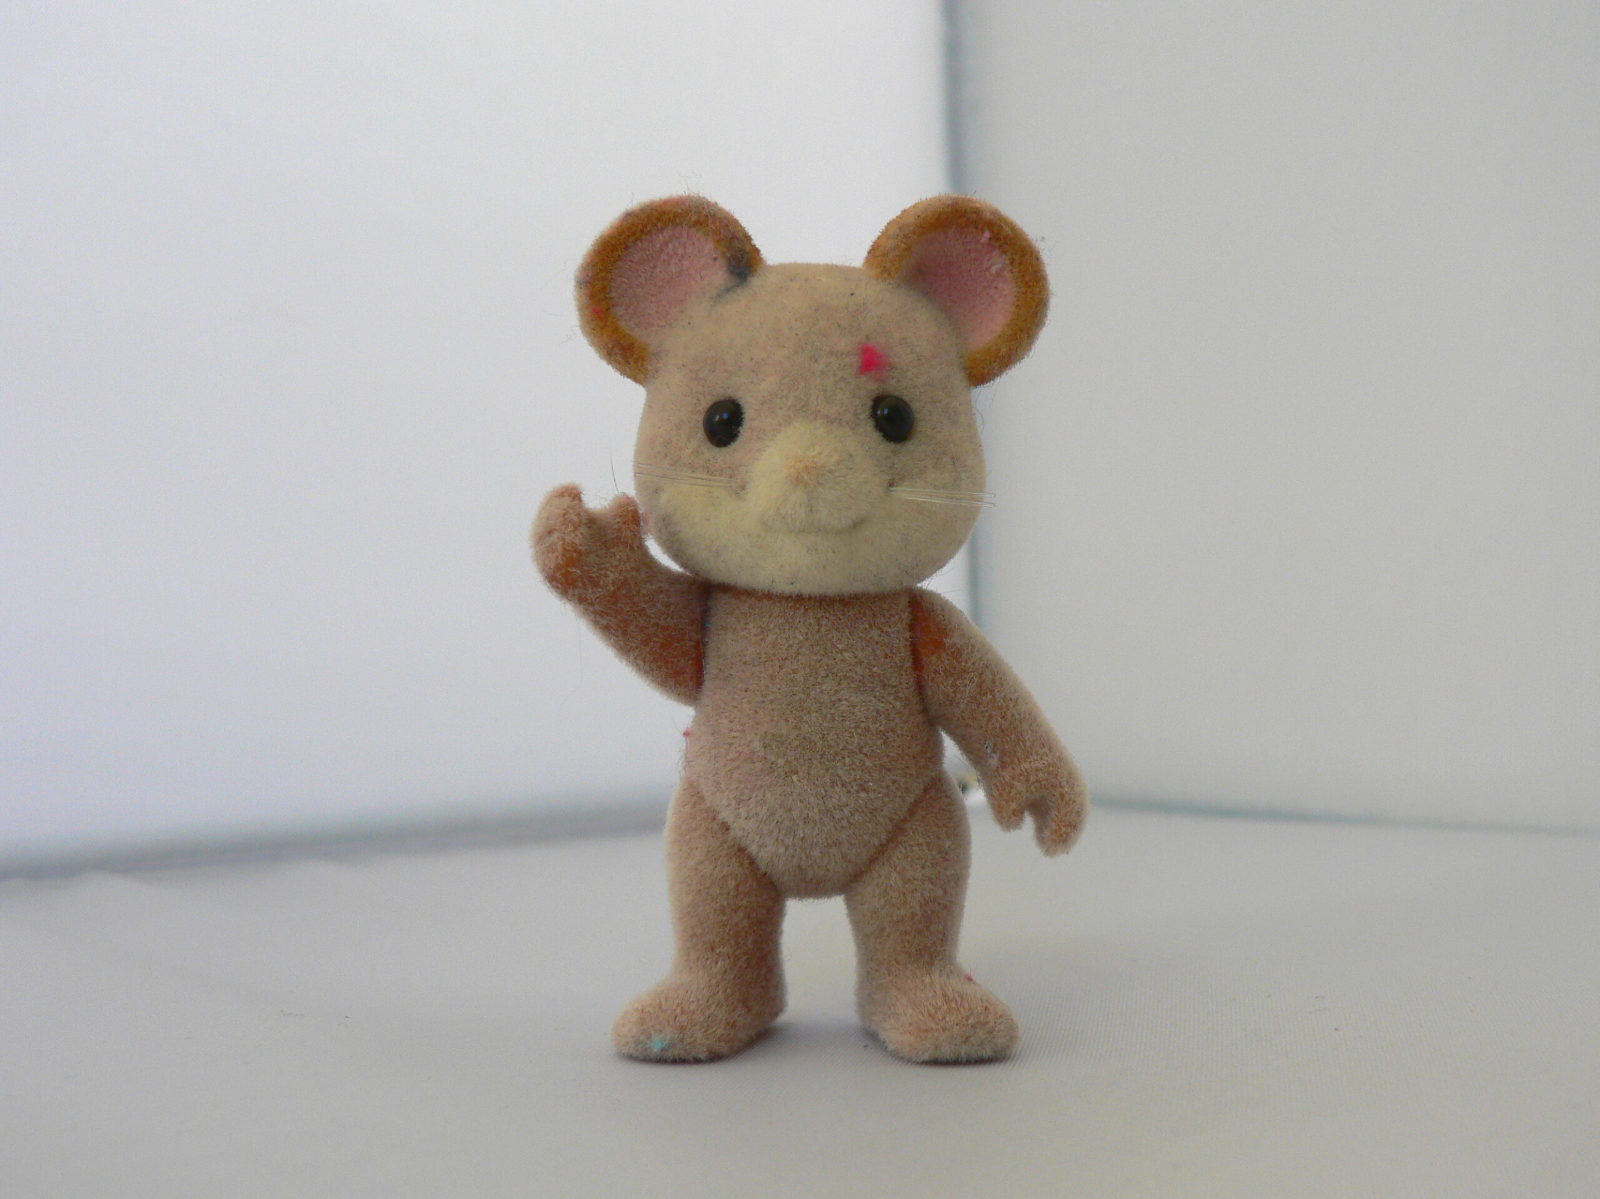 Epoch Calico Critters/Sylvanian Families Rare Brown Norwood Mouse Posable Figure - $9.99